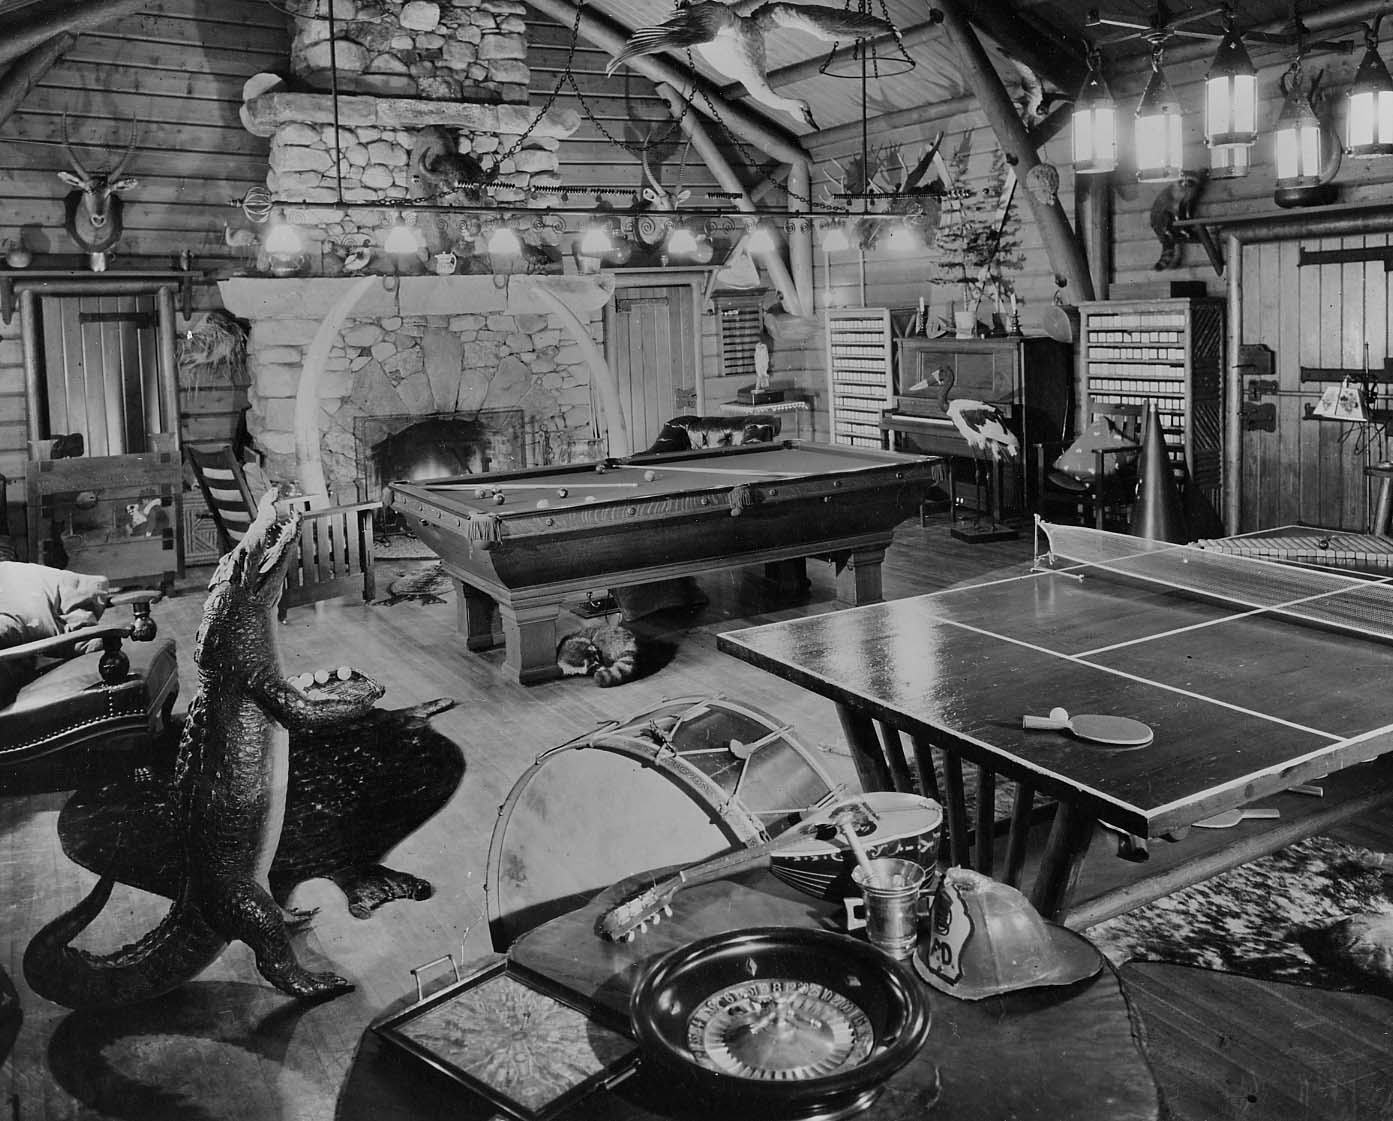 Adirondack Museum Collection. Photo description: Scene of game room at Great Camp Sagamore. Pool and ping-pong tables at center of room, various musical instruments around. Large fireplace at back of room. Mounted animals and birds throughout the room. Stuffed Aligator holding ping-pong balls at left, sleeping raccoon under pool table. Mounted to board with P6892 on reverse.